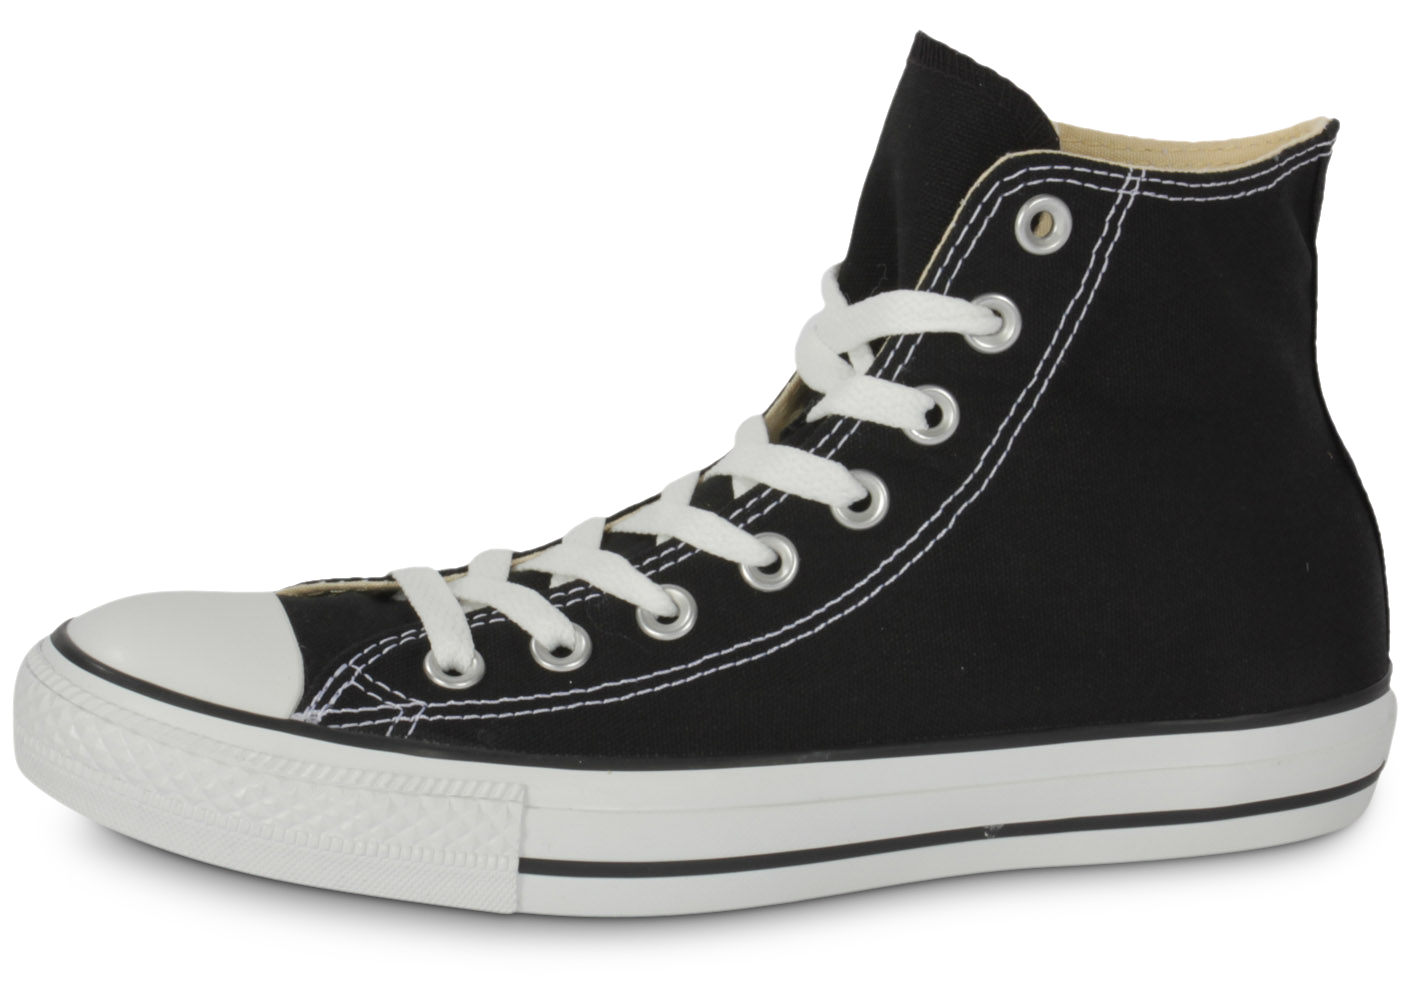 Converse homme chuck taylor all star hi noire...